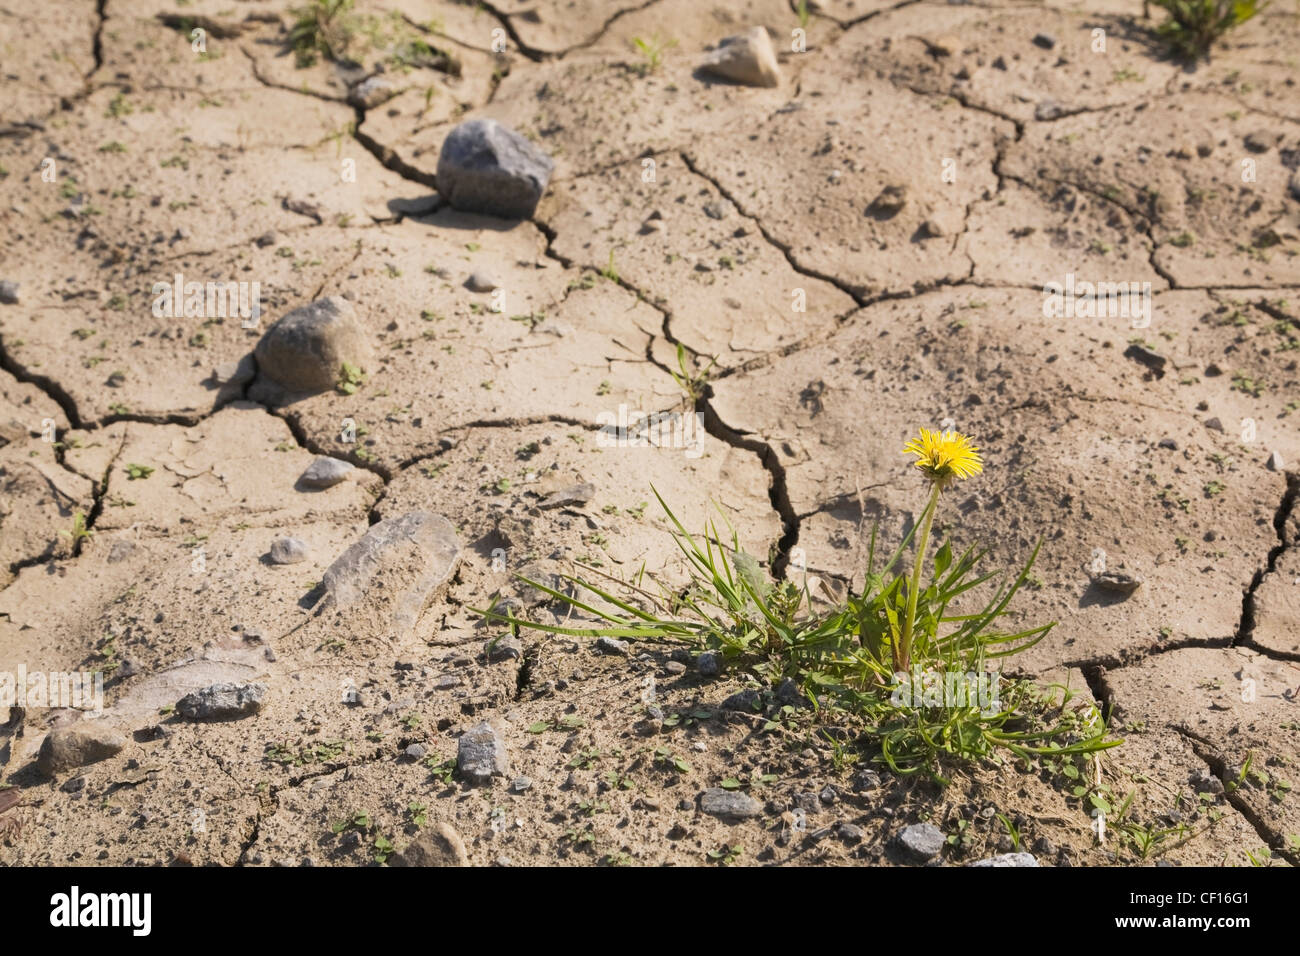 Yellow Dandelion Flower Growing In A Parched Agricultural Field At Springtime; Laval Quebec Canada - Stock Image